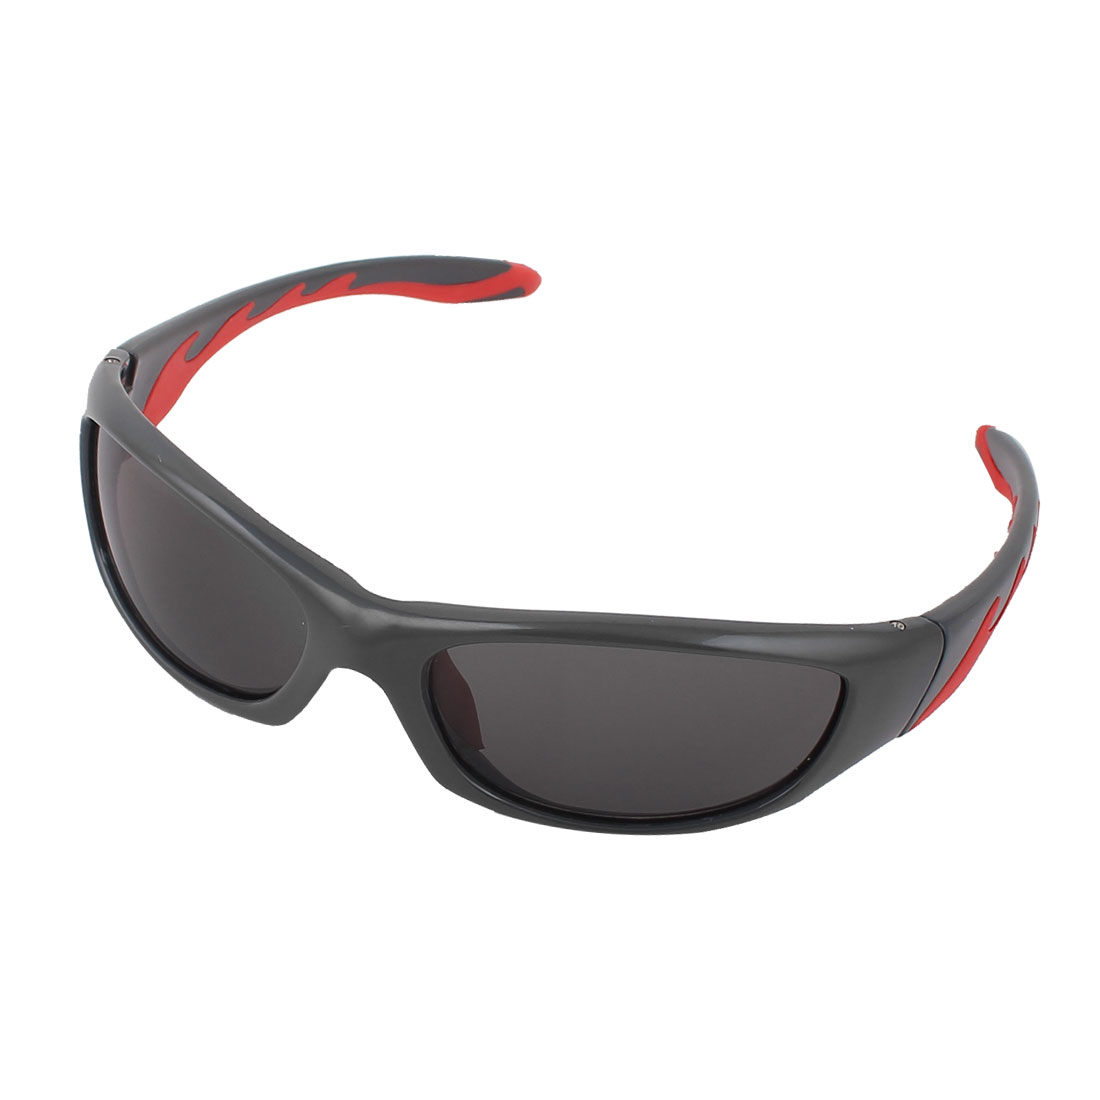 Man Plastic Full Rim Rectangle Lens Glasses Sunglasses Eyewear Gray Red